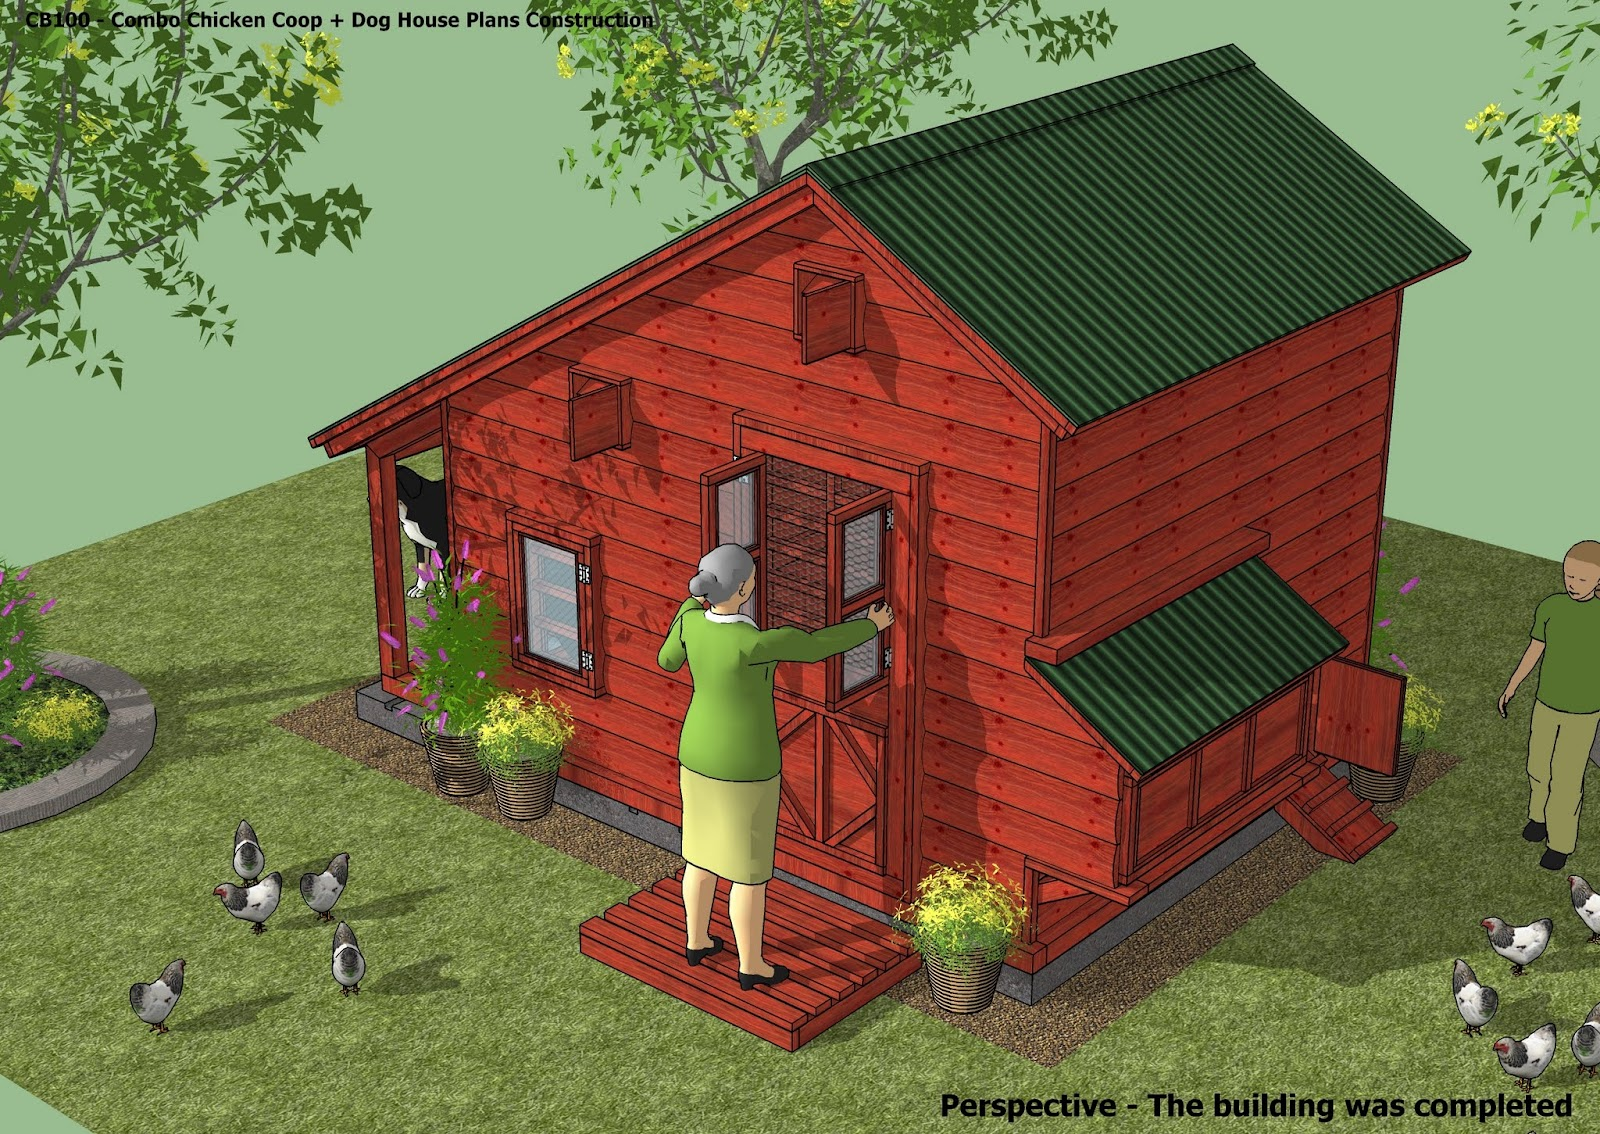 home garden plans: en Coops on outhouse interiors, red house interiors, brown house interiors, swedish house interiors, cottage interiors, norway house interiors, fish house interiors, tree house interiors, fun house interiors, poultry house interiors, foursquare house interiors, cat house interiors, shed interiors, dog house interiors, garage interiors, bus house interiors, black house interiors, kitchen interiors, green house interiors, hill house interiors,